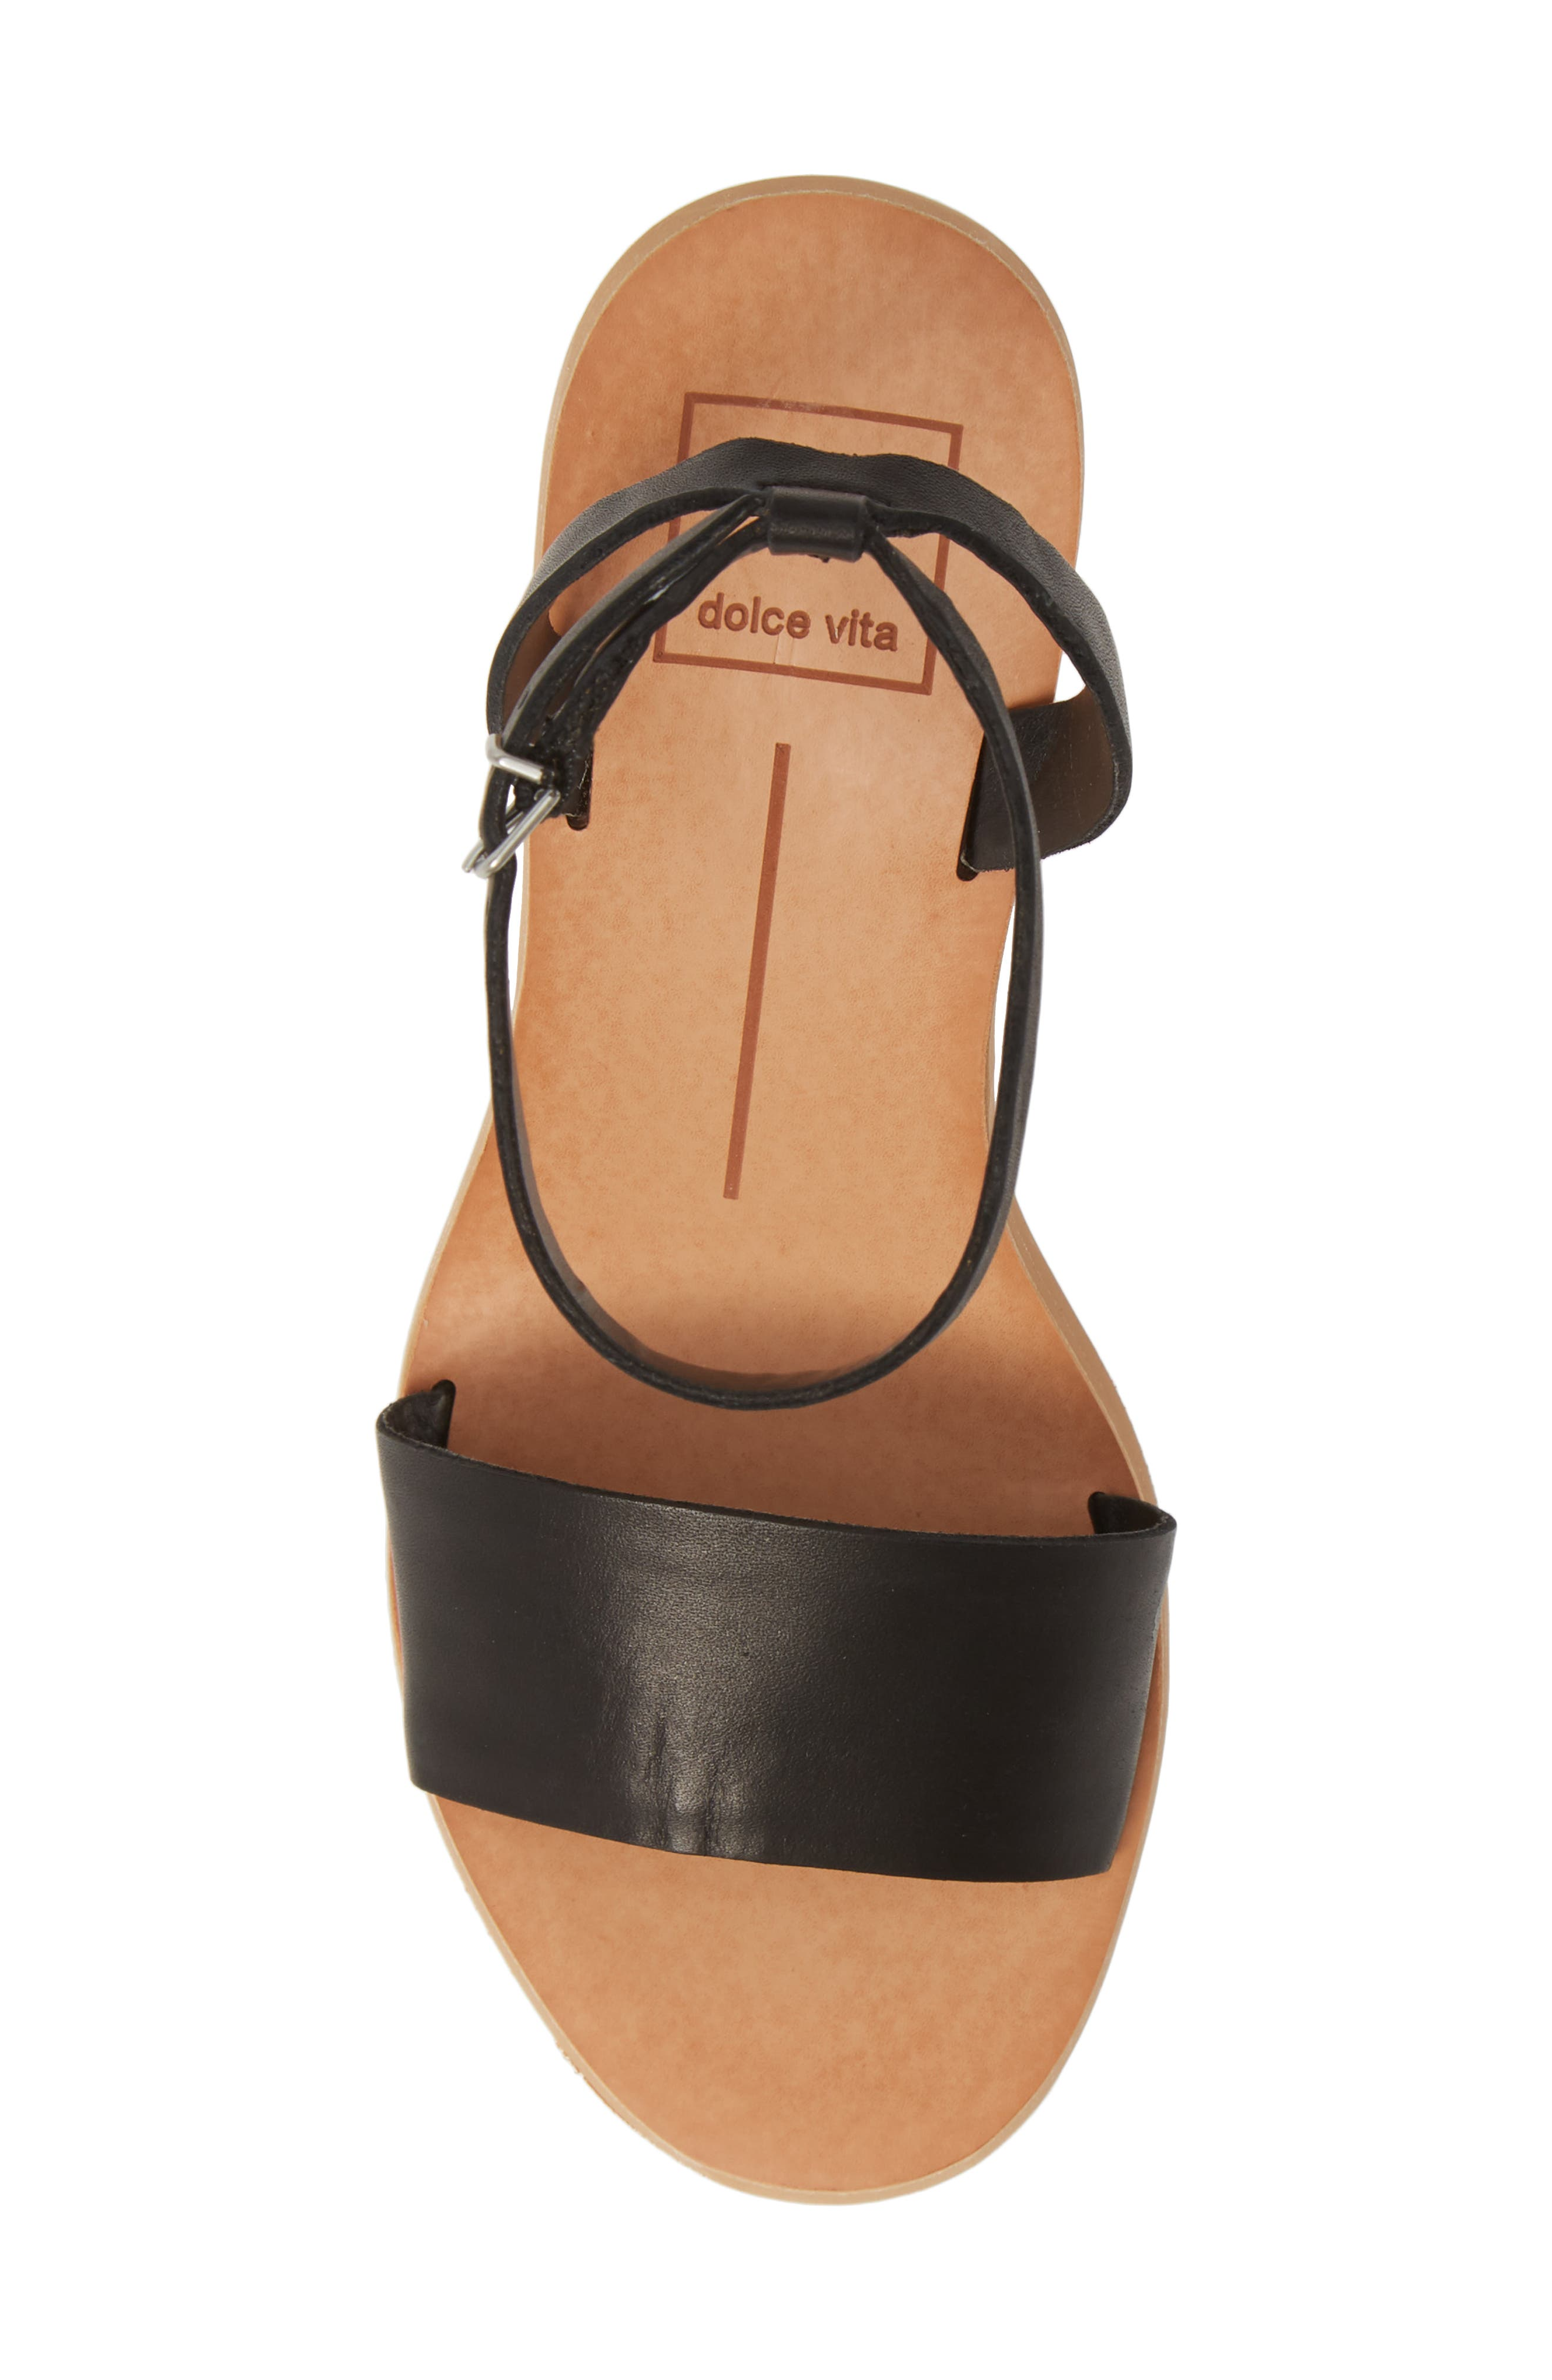 DOLCE VITA, Jali Column Heel Sandal, Alternate thumbnail 5, color, BLACK LEATHER